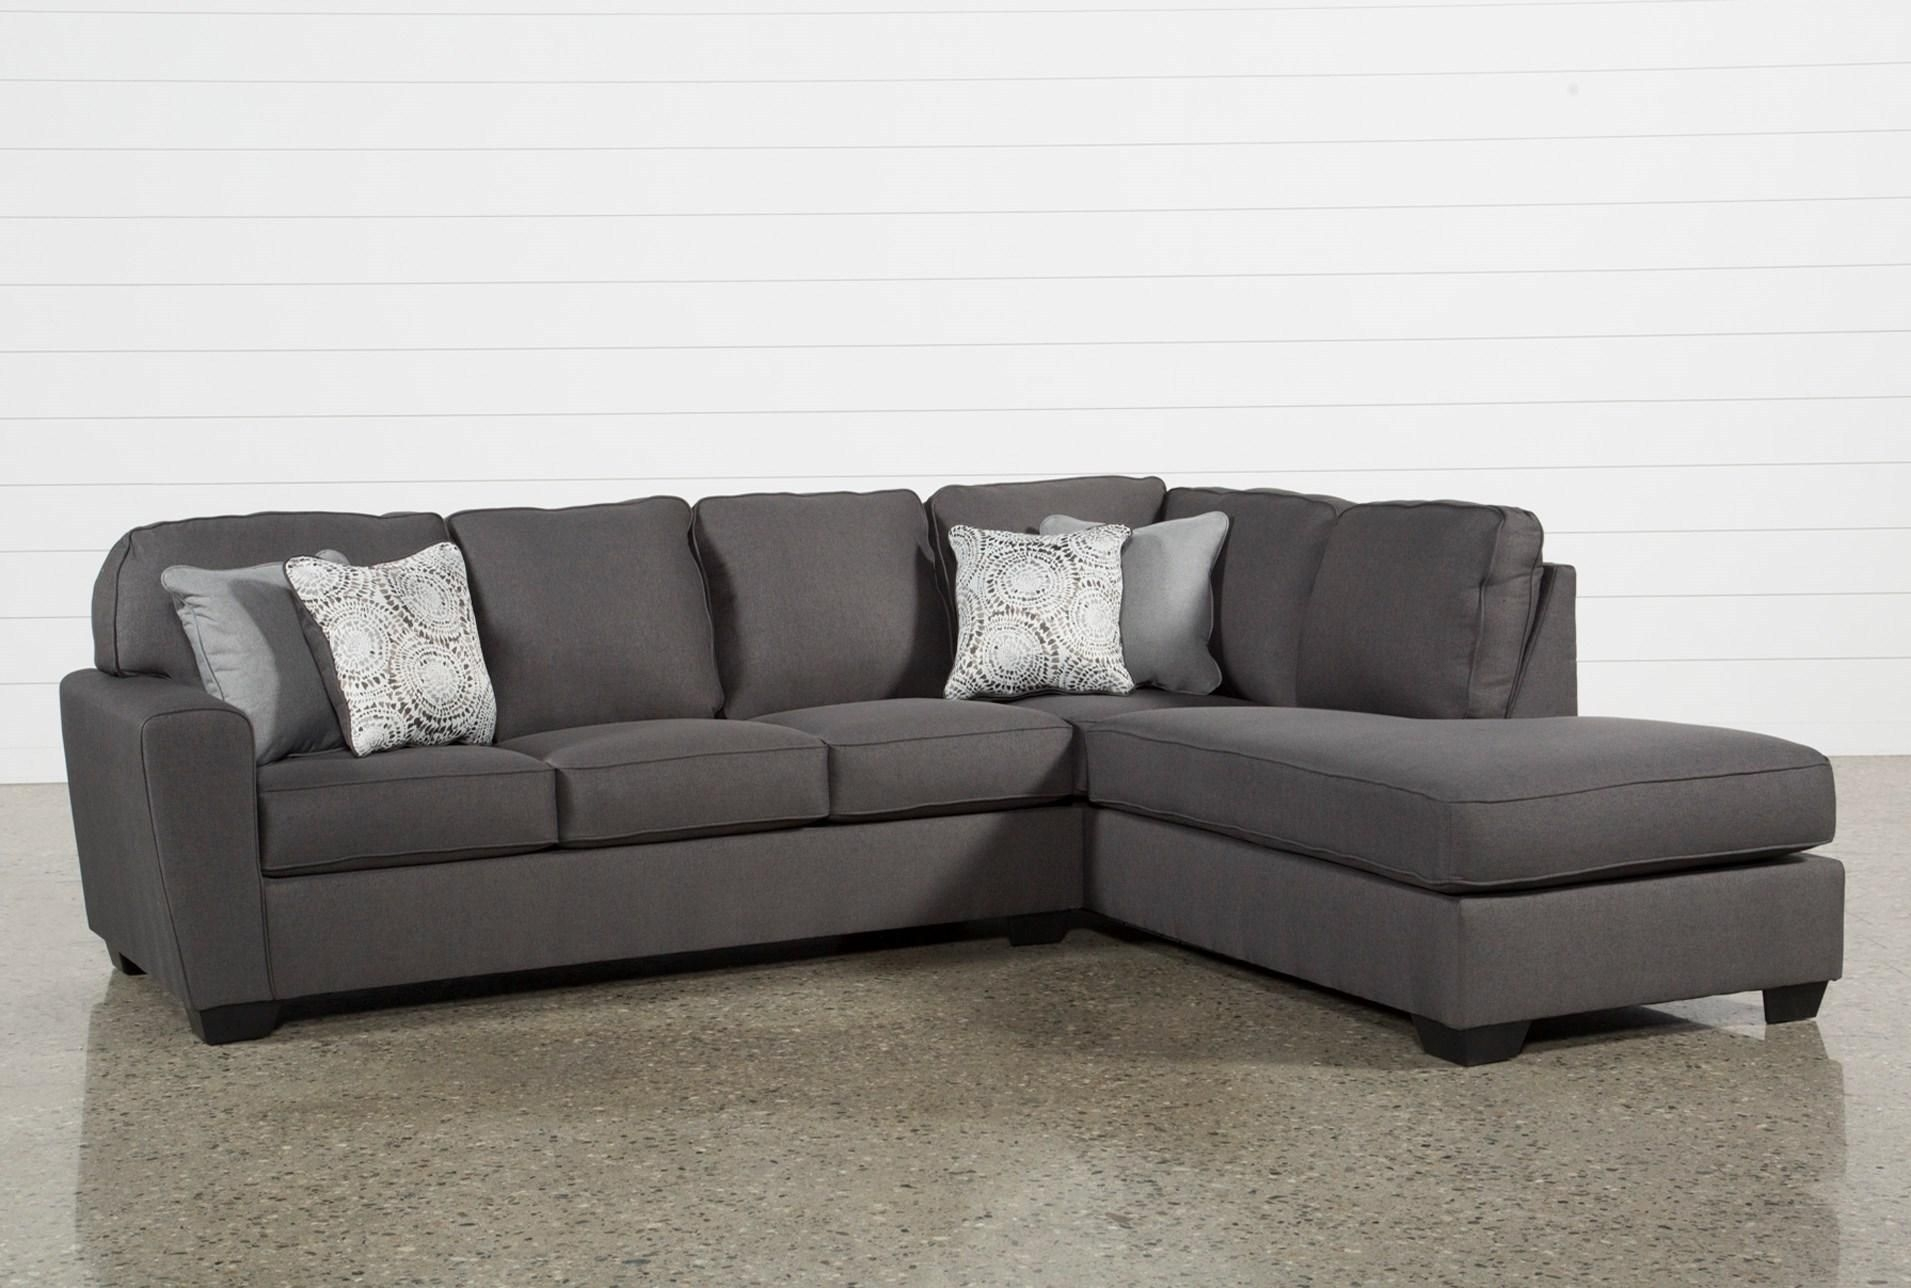 Mcdade Graphite 2 Piece Sectional W/raf Chaise | Livingroom throughout Josephine 2 Piece Sectionals With Laf Sofa (Image 18 of 30)